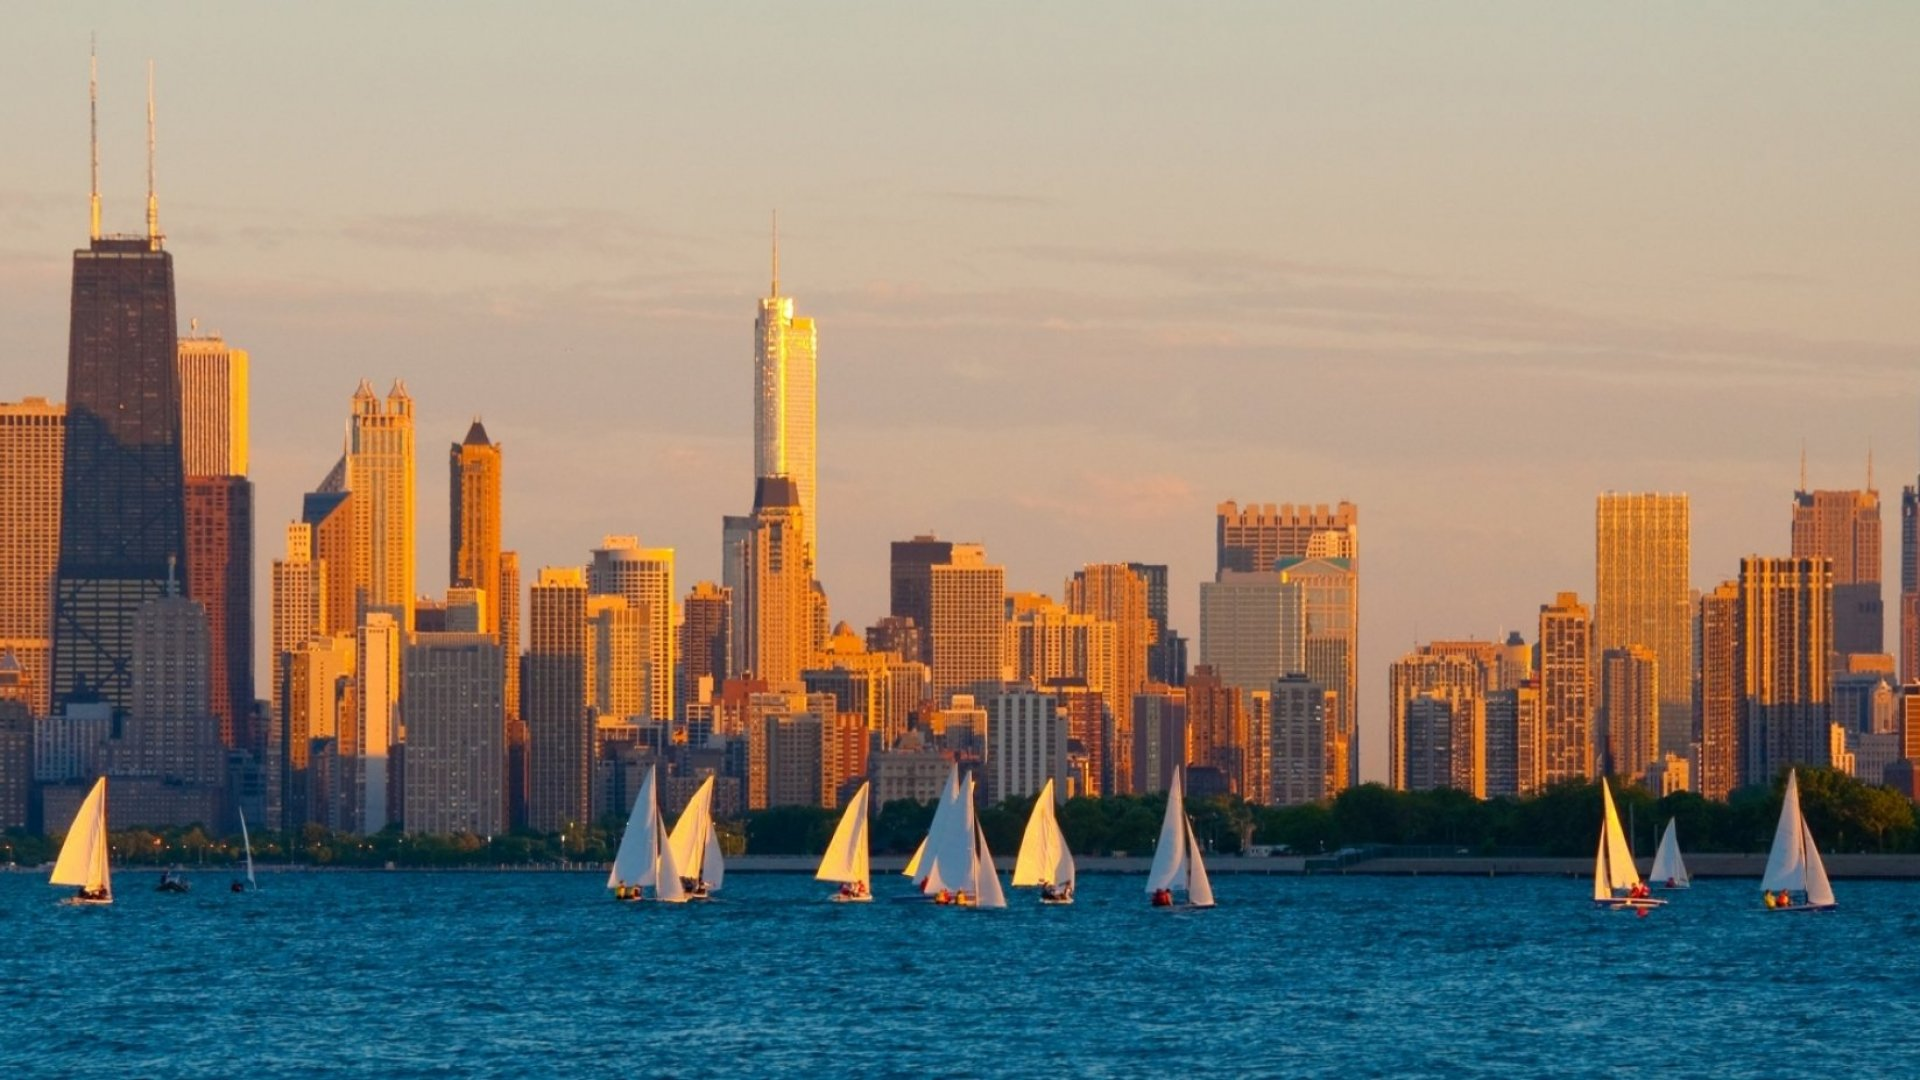 8 Cities Where It's Smarter to Rent Instead of Buy